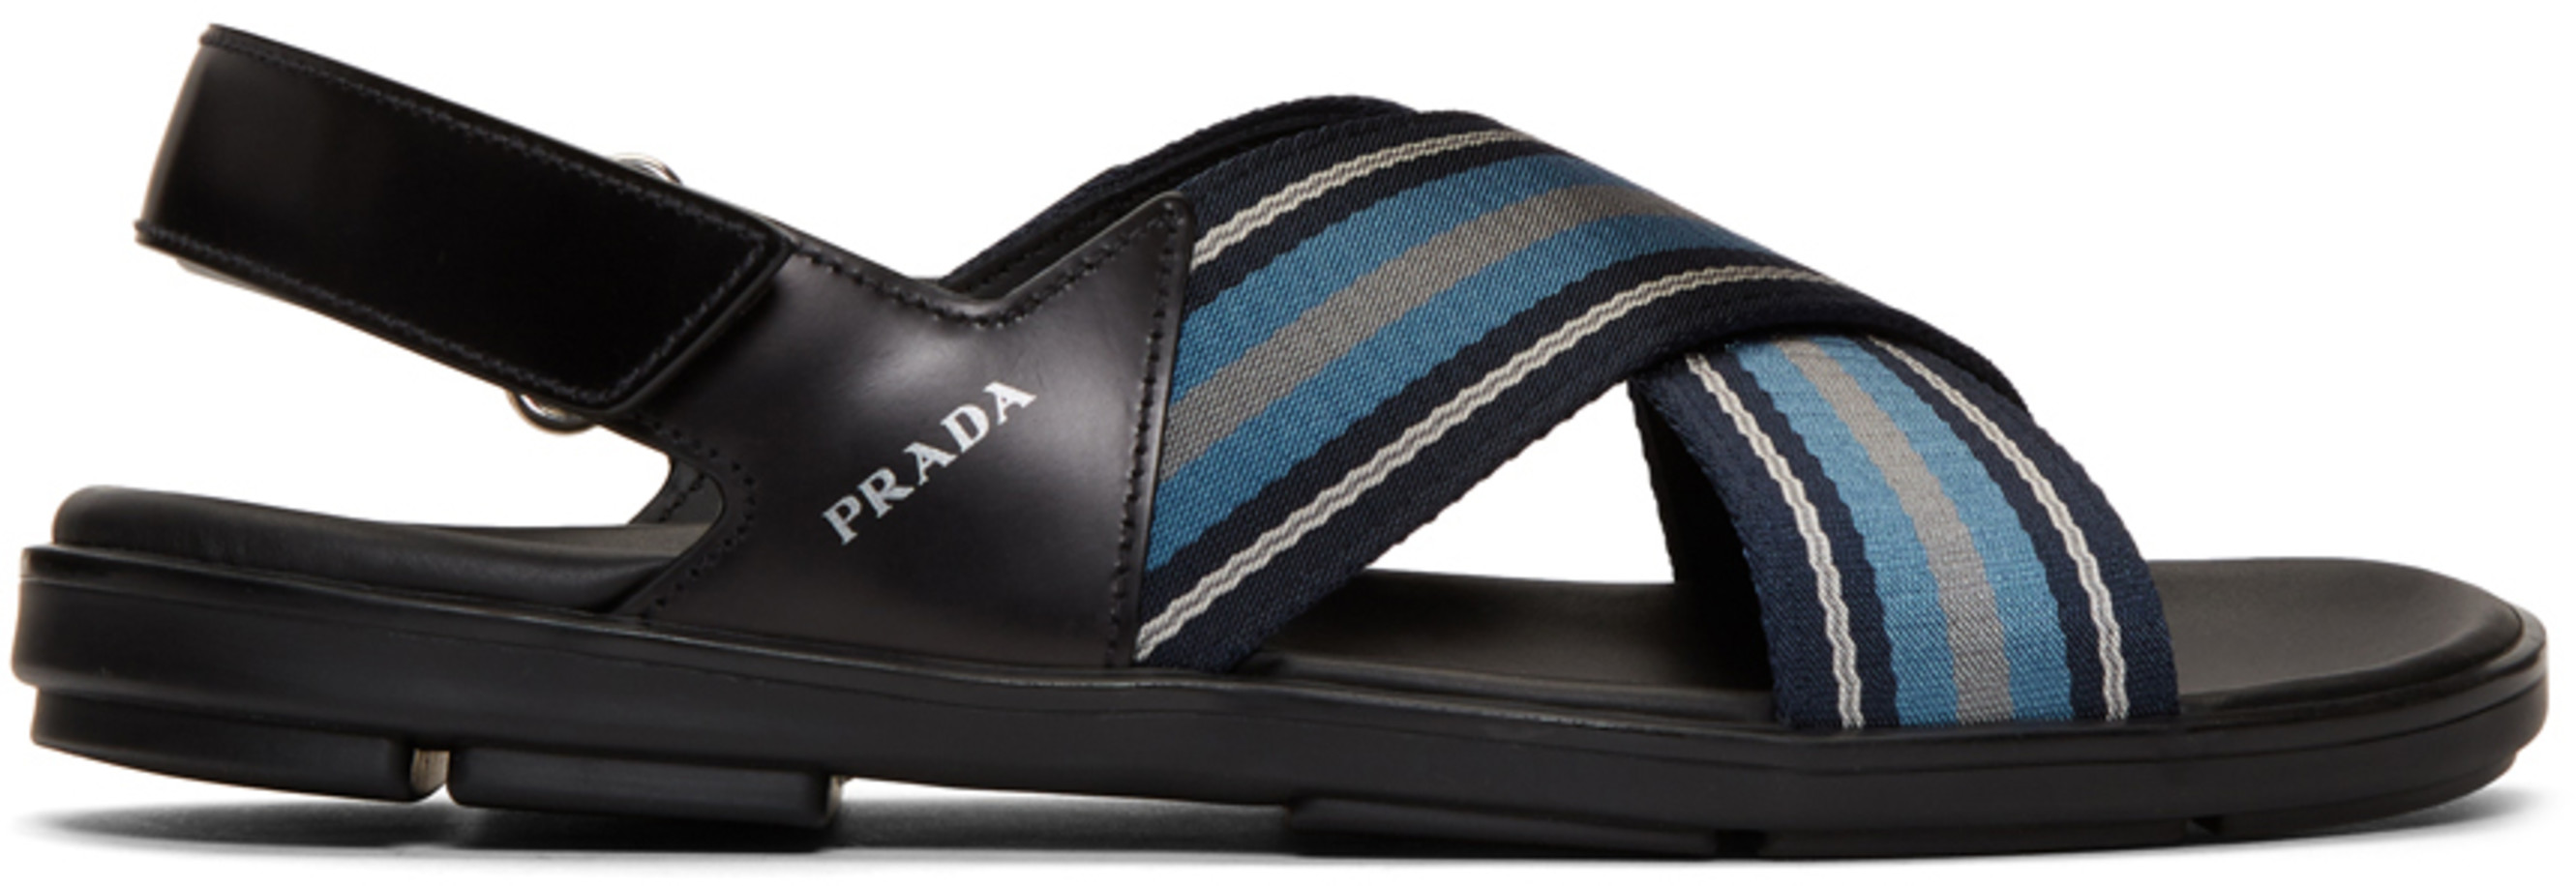 a646175f9 Designer sandals for Men